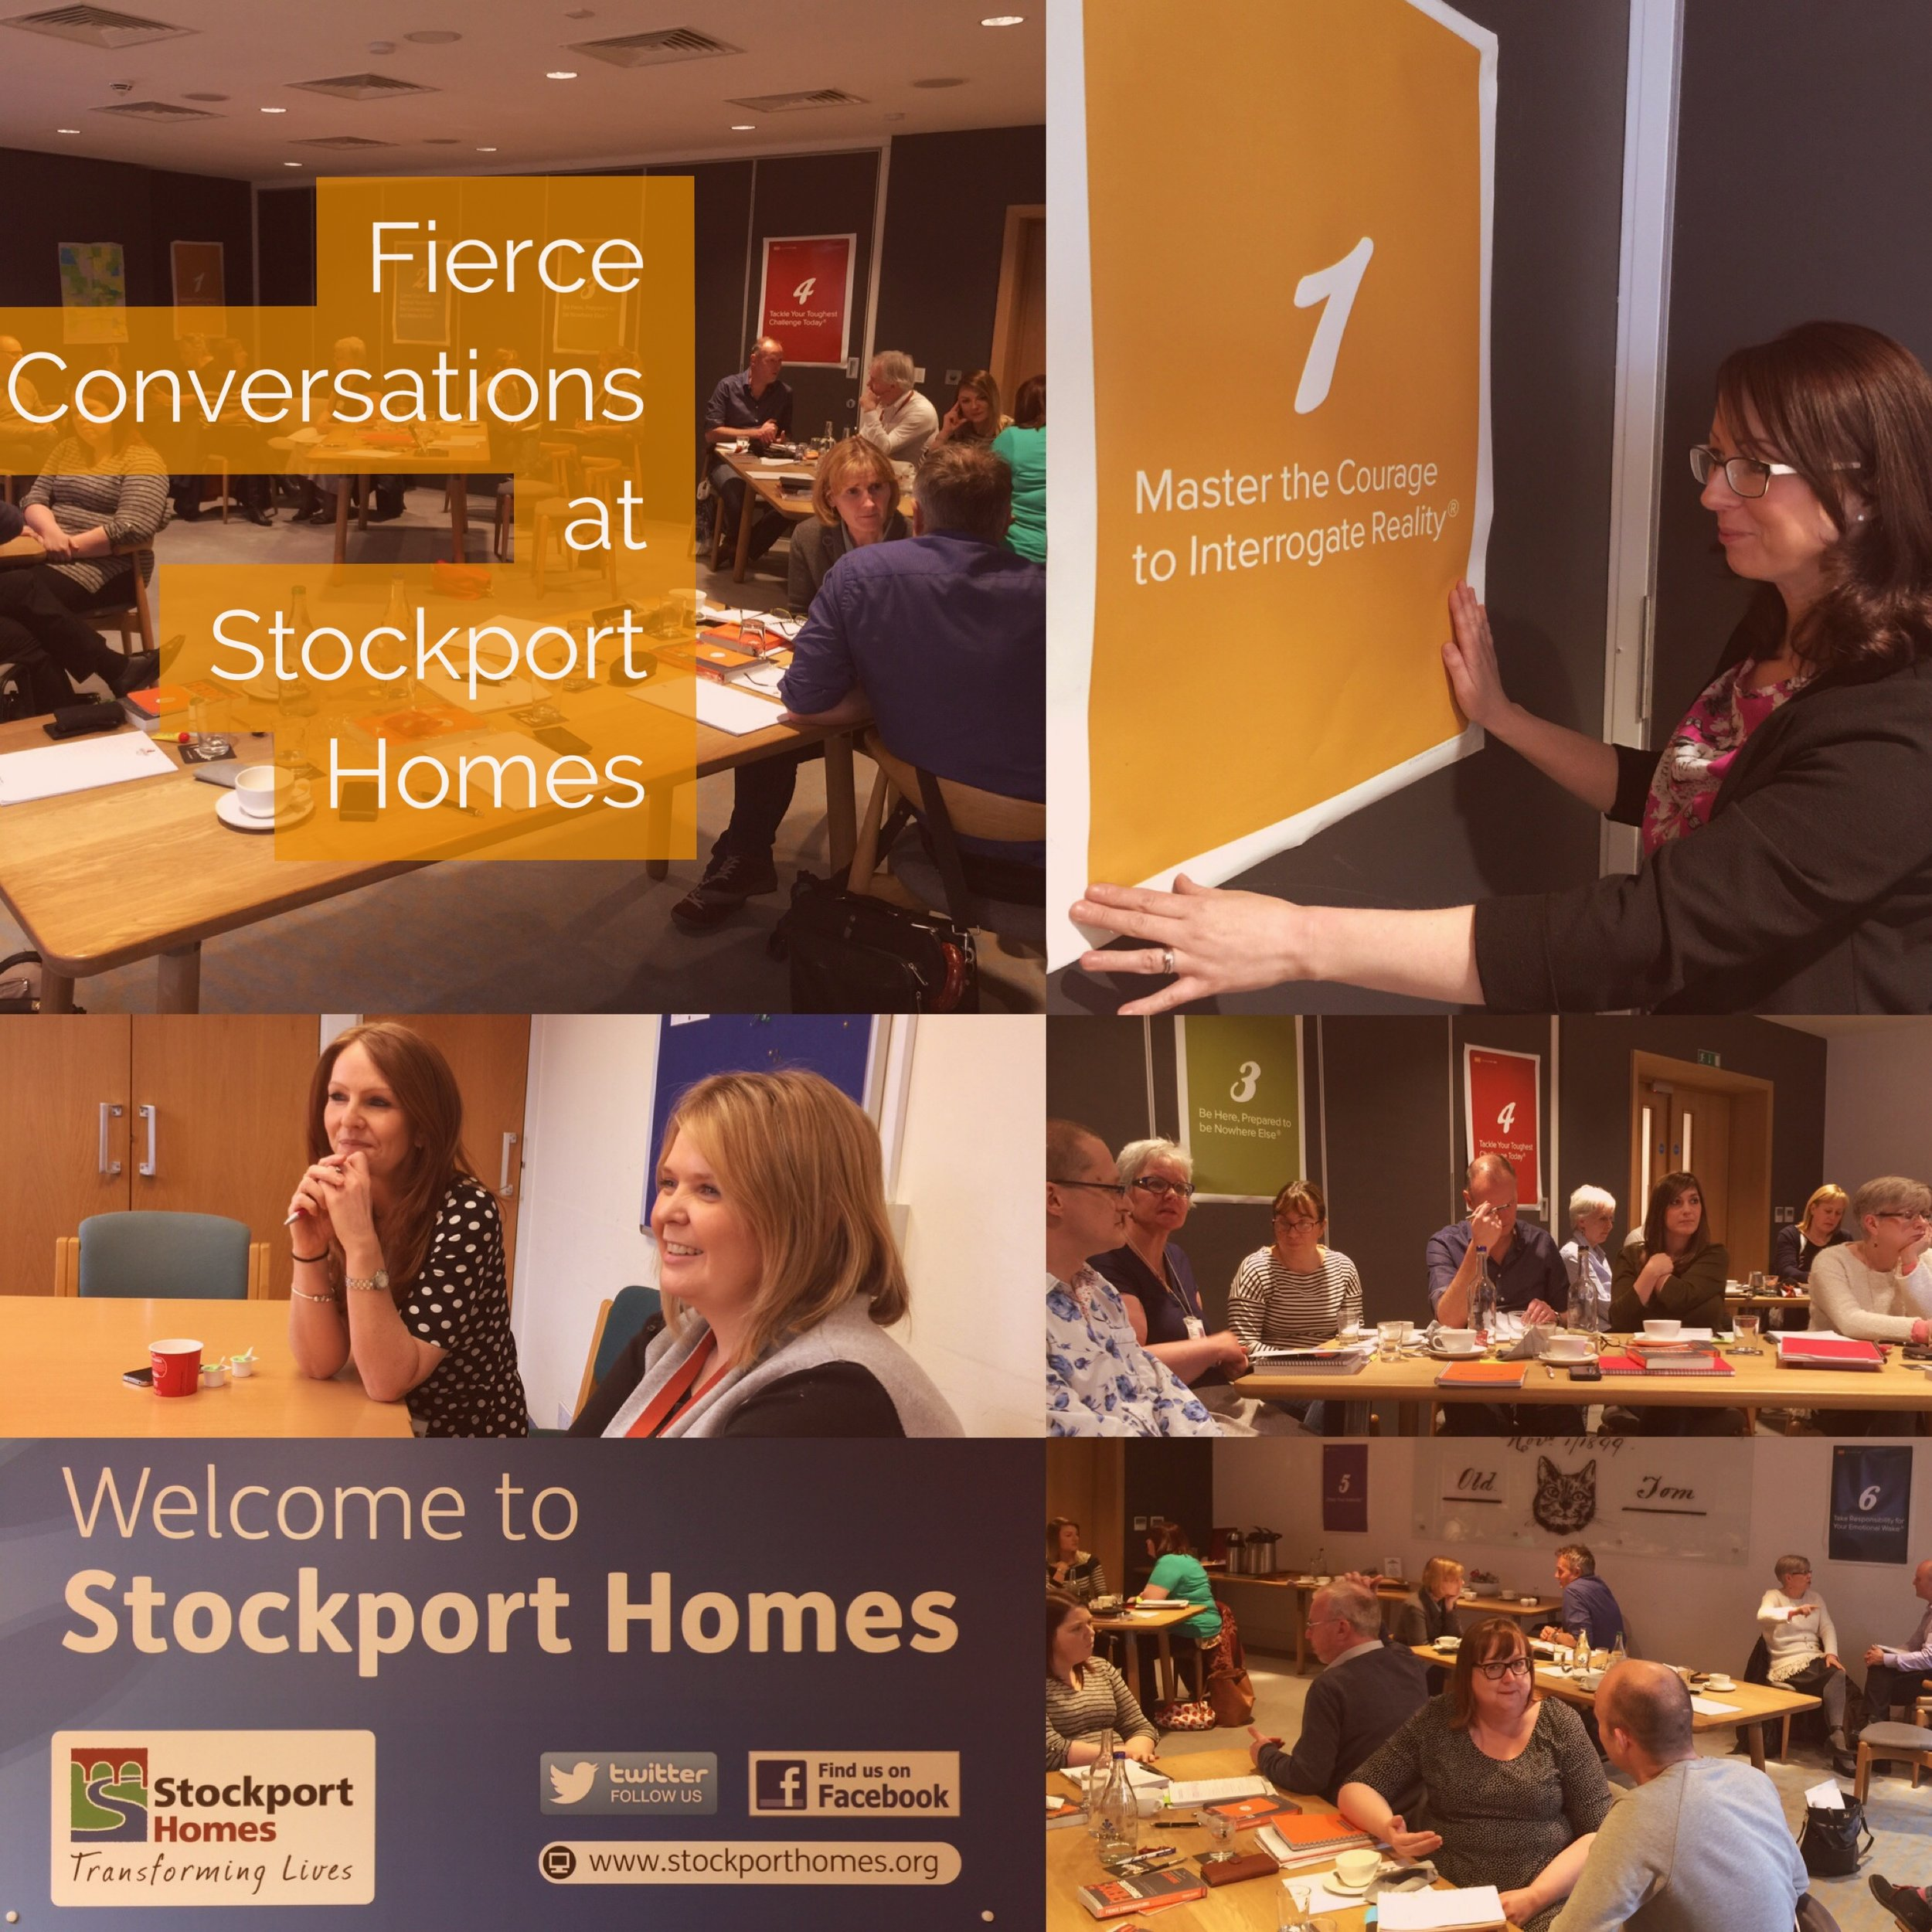 Top right: head of organizational devlopment Liz Chadwick, spreading the word about Fierce. Other images of Stockport Homes' team discussing Fierce.